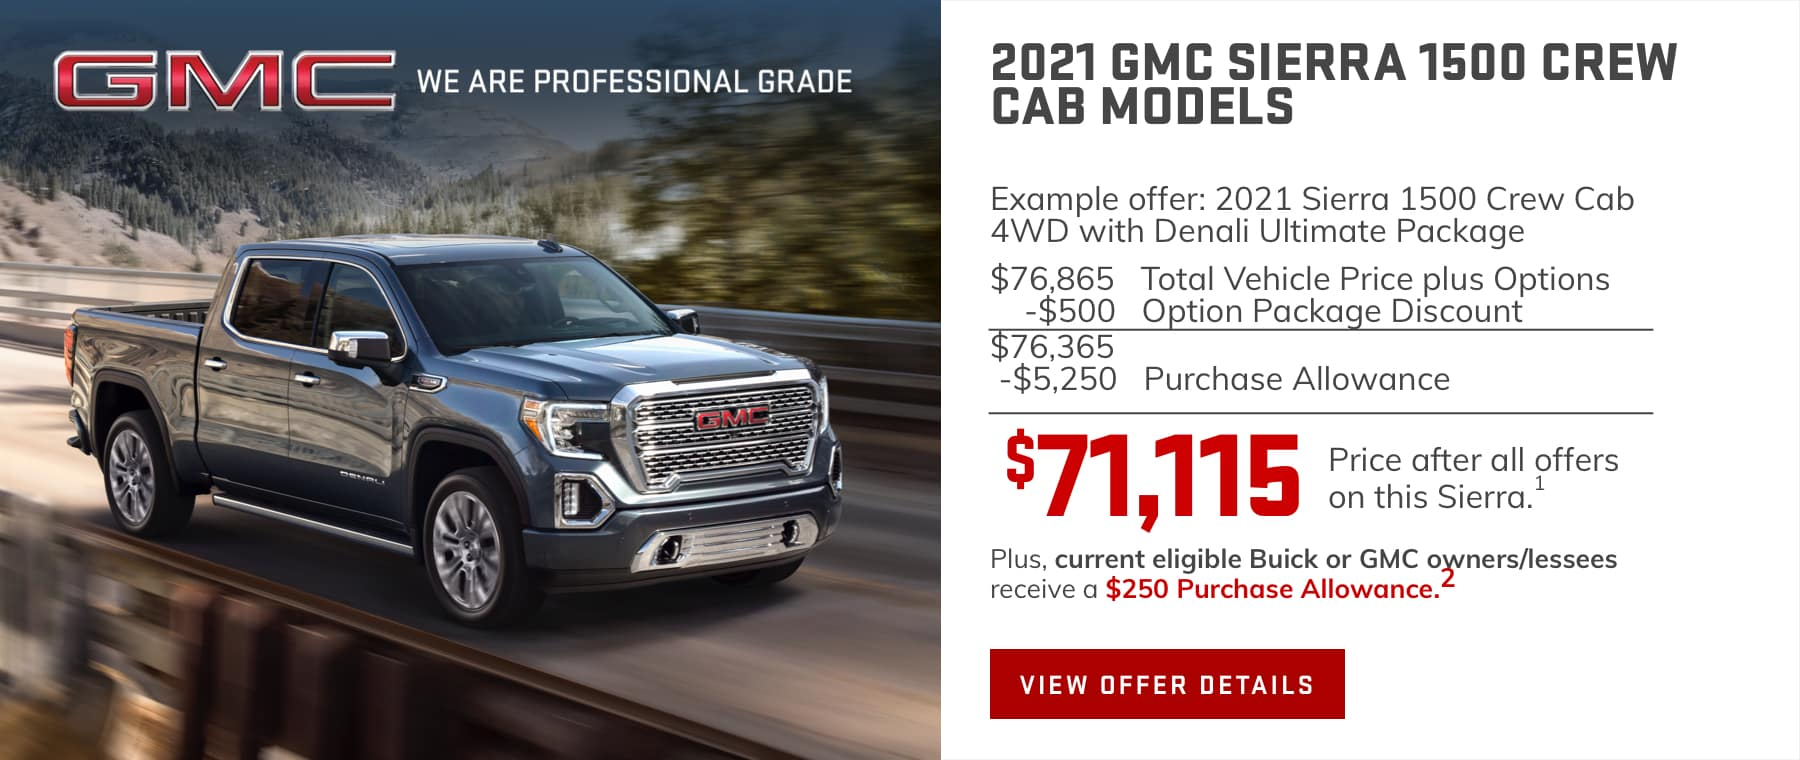 $5,250 Purchase Allowance.1 Plus, current eligible Buick or GMC owners/lessees receive an additional $250 Purchase Allowance.2